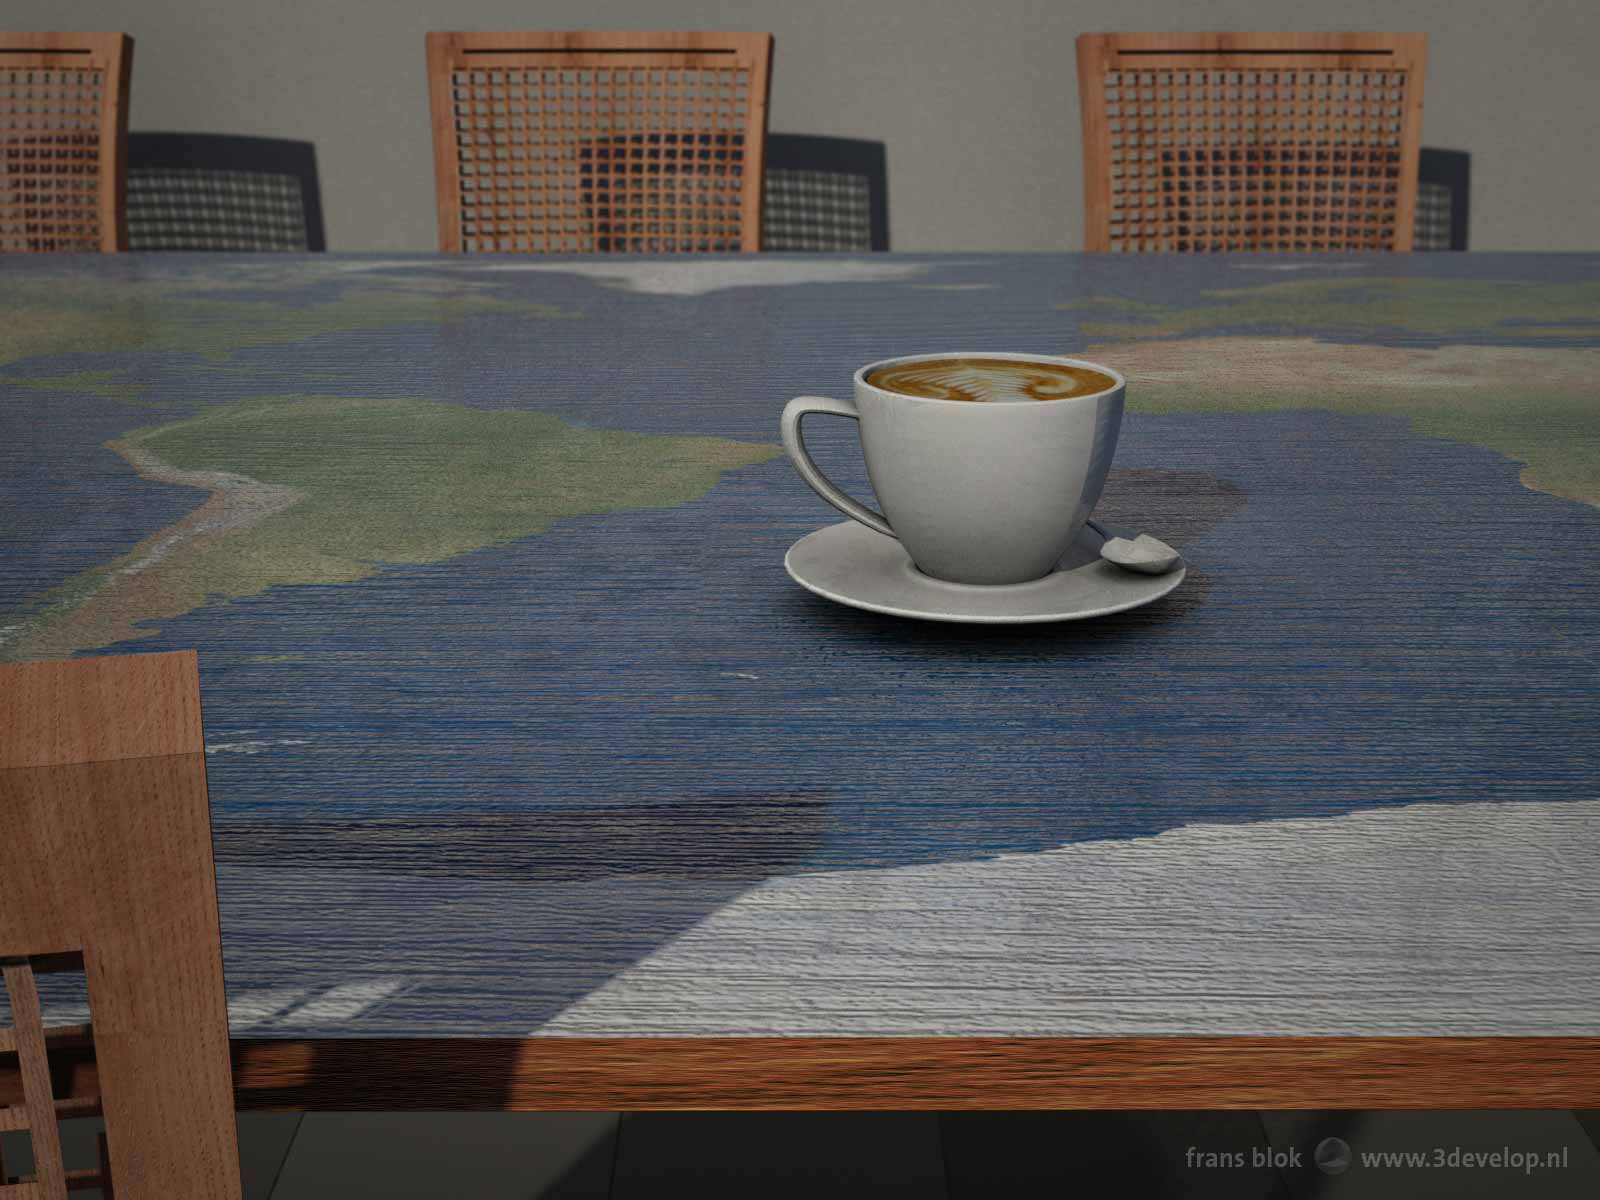 The Flat Earth table: a wooden dining table with a print of the world map, shown here with a cup of coffee